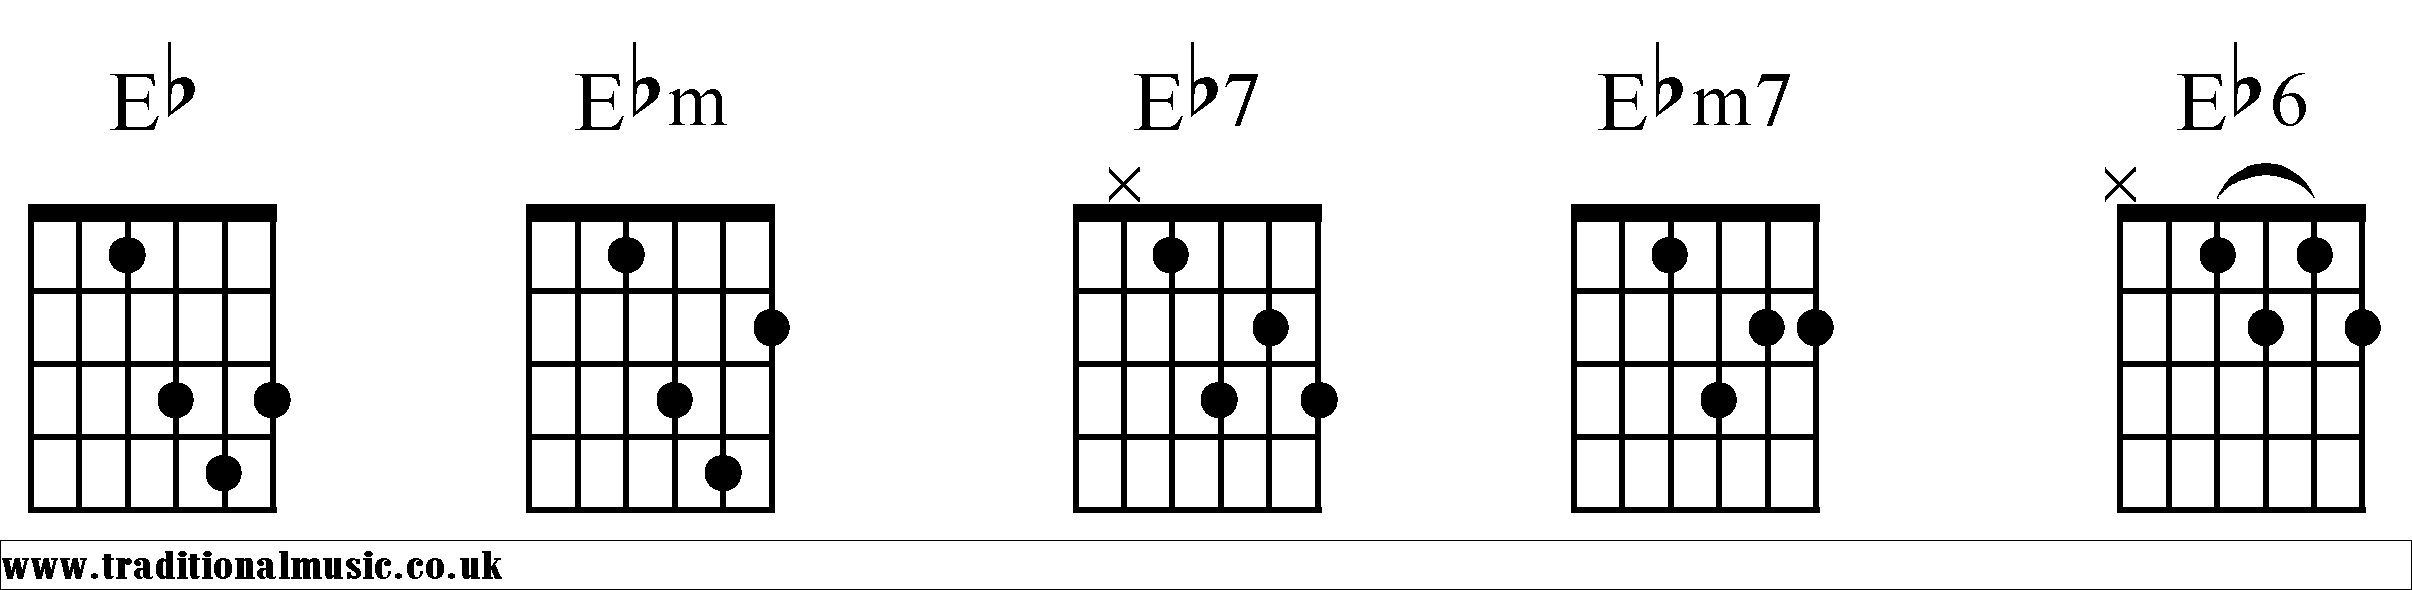 Eb Guitar Chord Chart Diagram Wiring Diagram For Light Switch